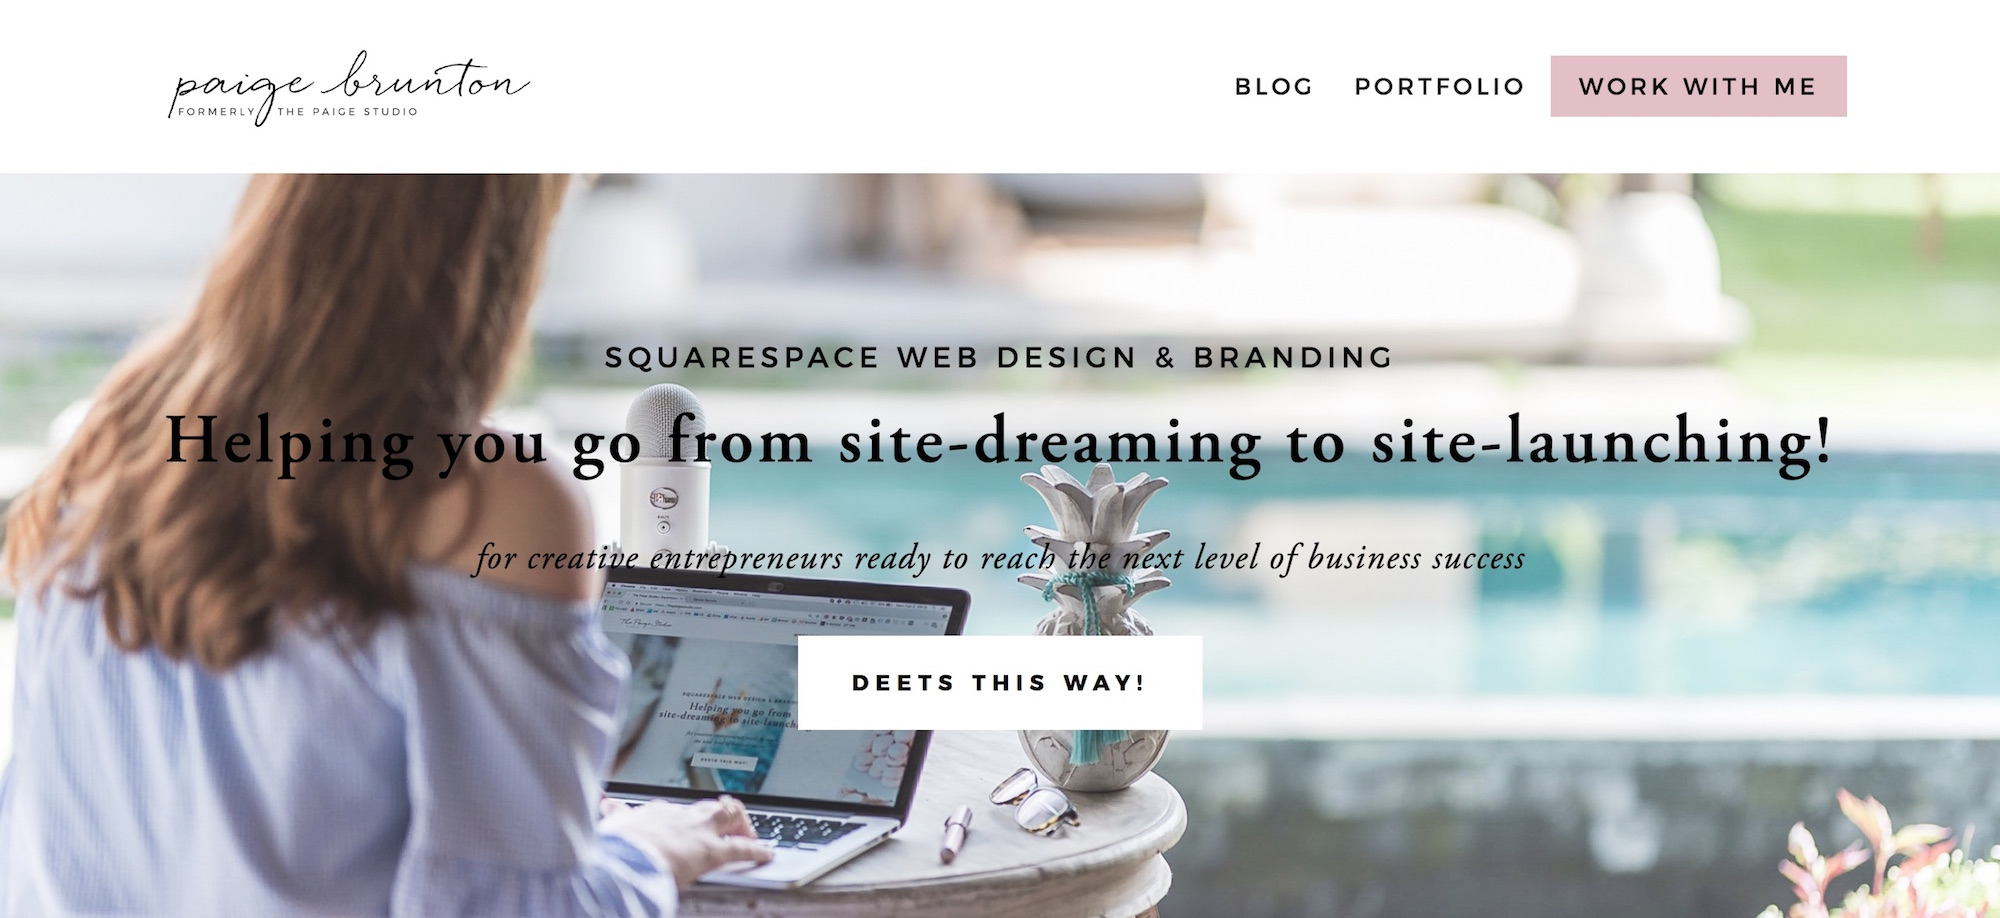 squarespace website without spacer blocks.jpg